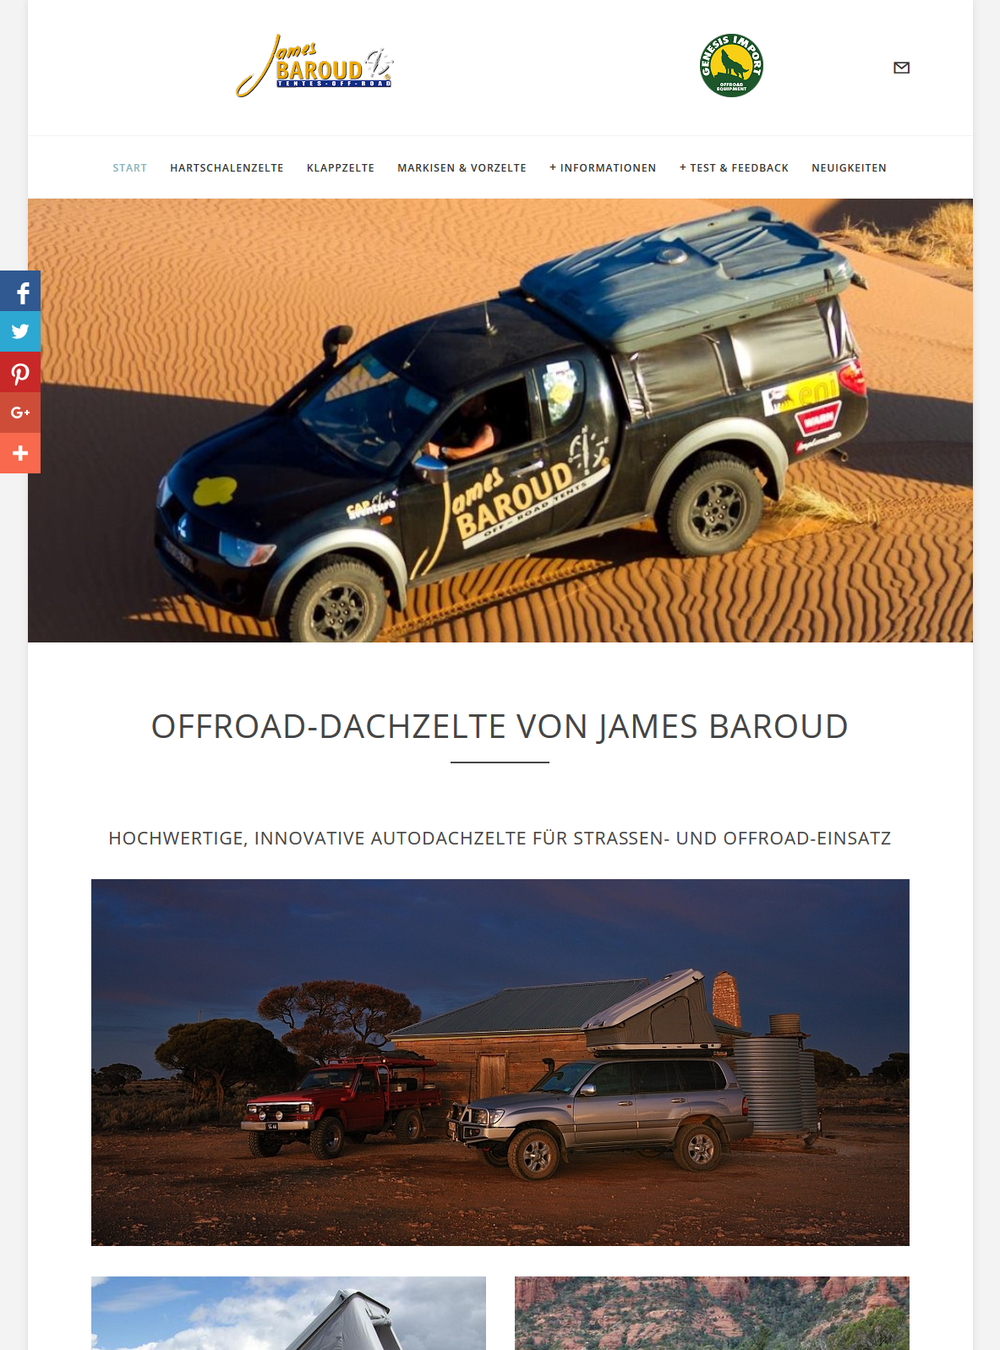 james-baroud-de.PNG